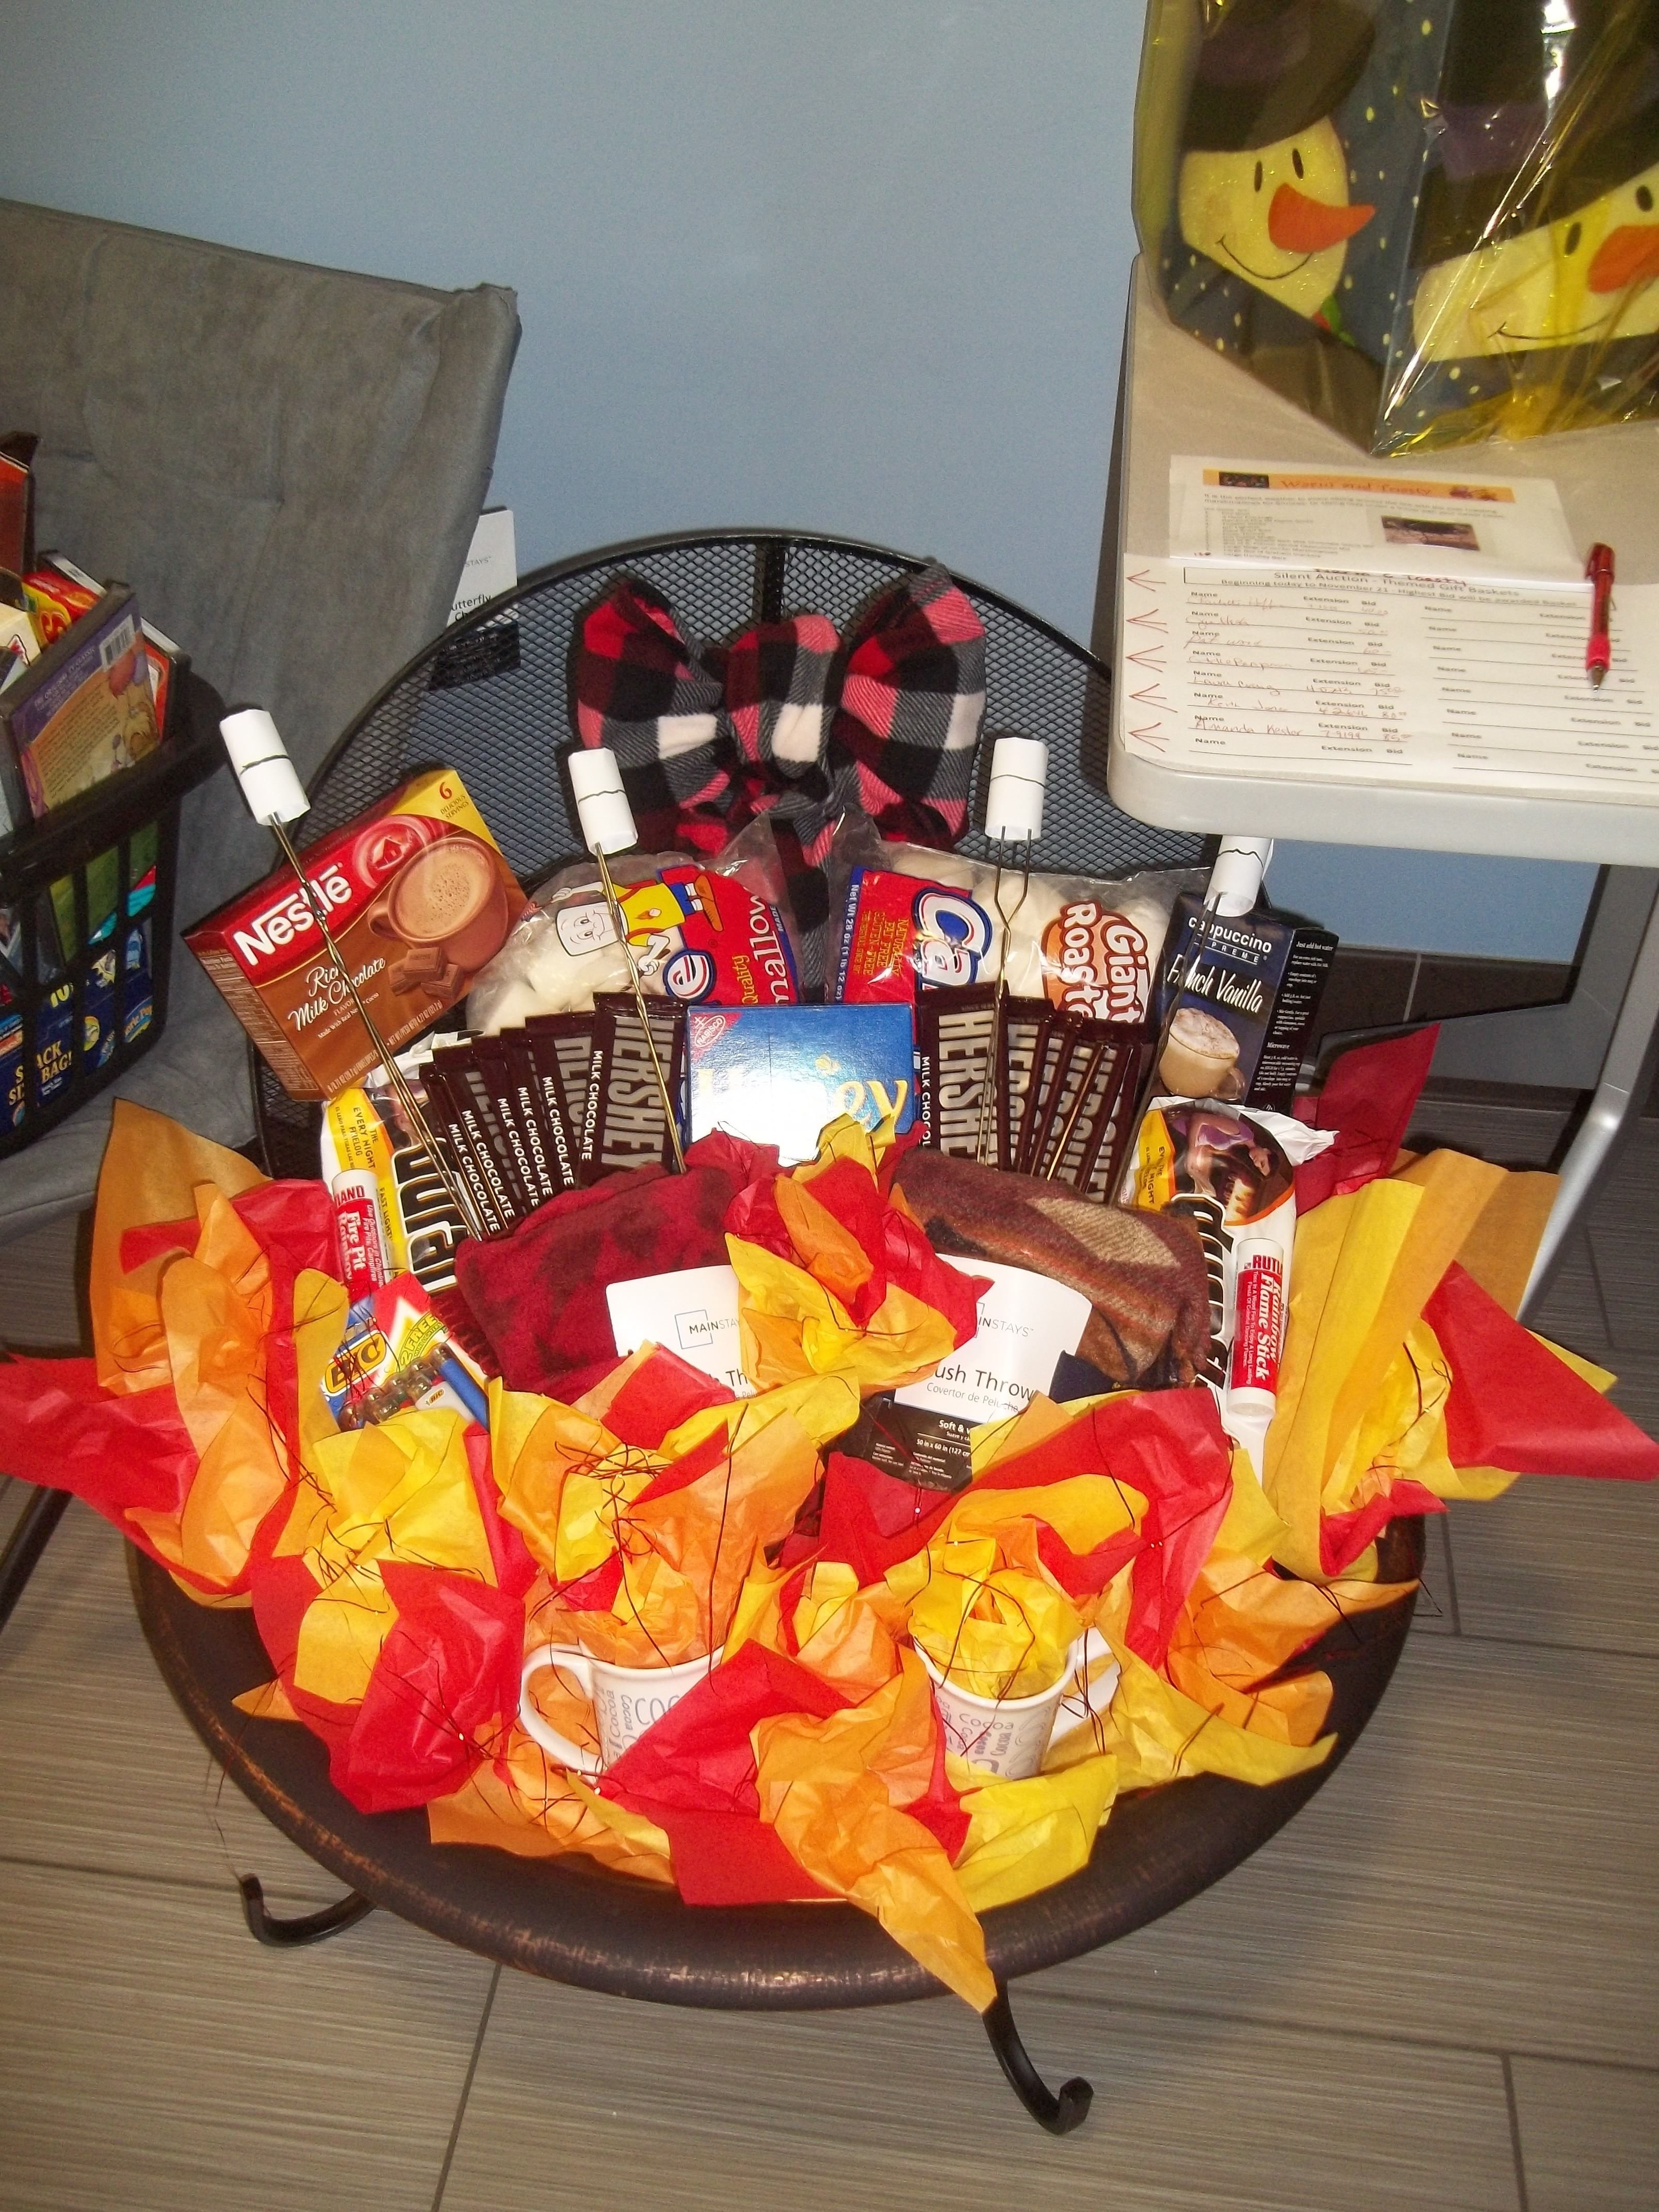 10 Fantastic Unique Silent Auction Basket Ideas made this for a fundraiser silent auction its consist of a fire 2021